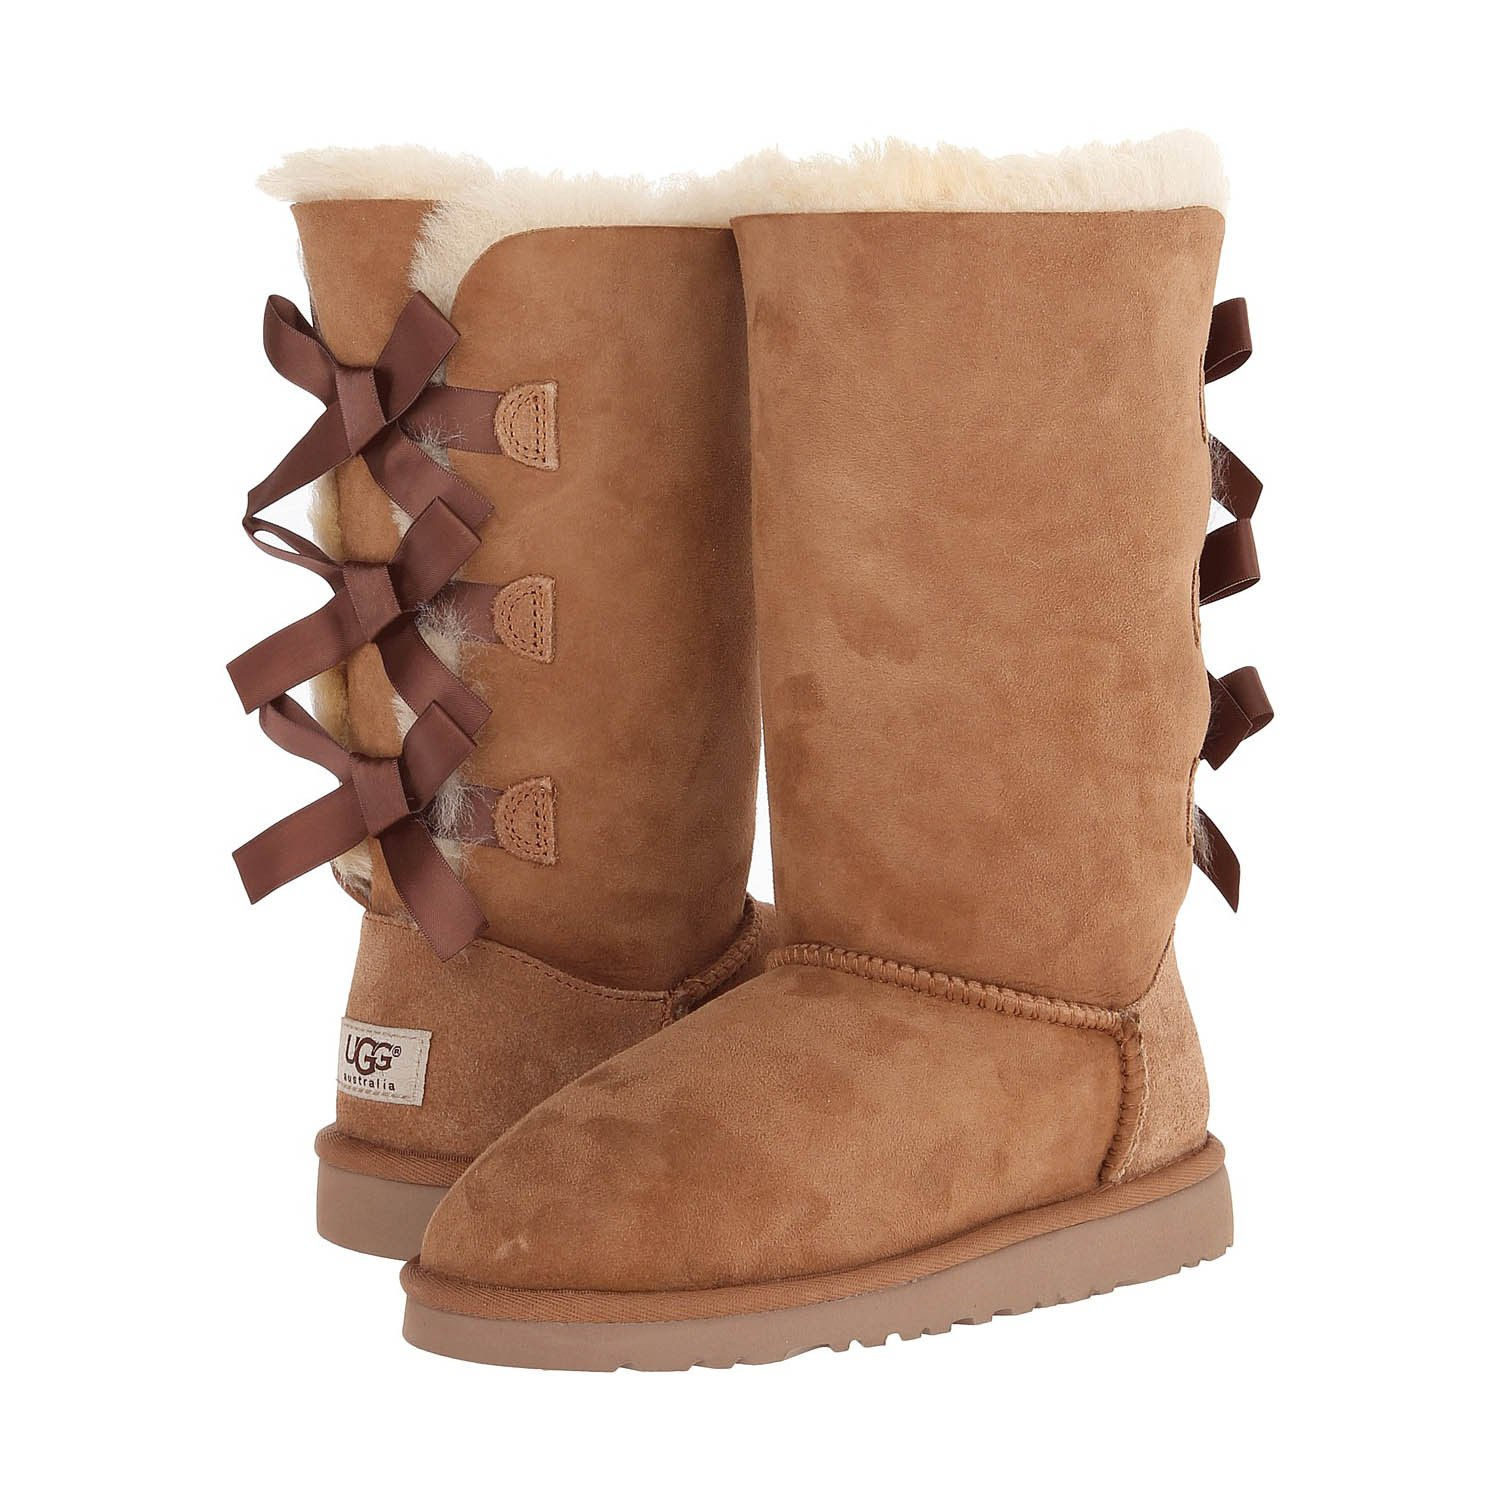 UGG® Australia New Bailey Bow Tall Chestnut 1 Kids Boots